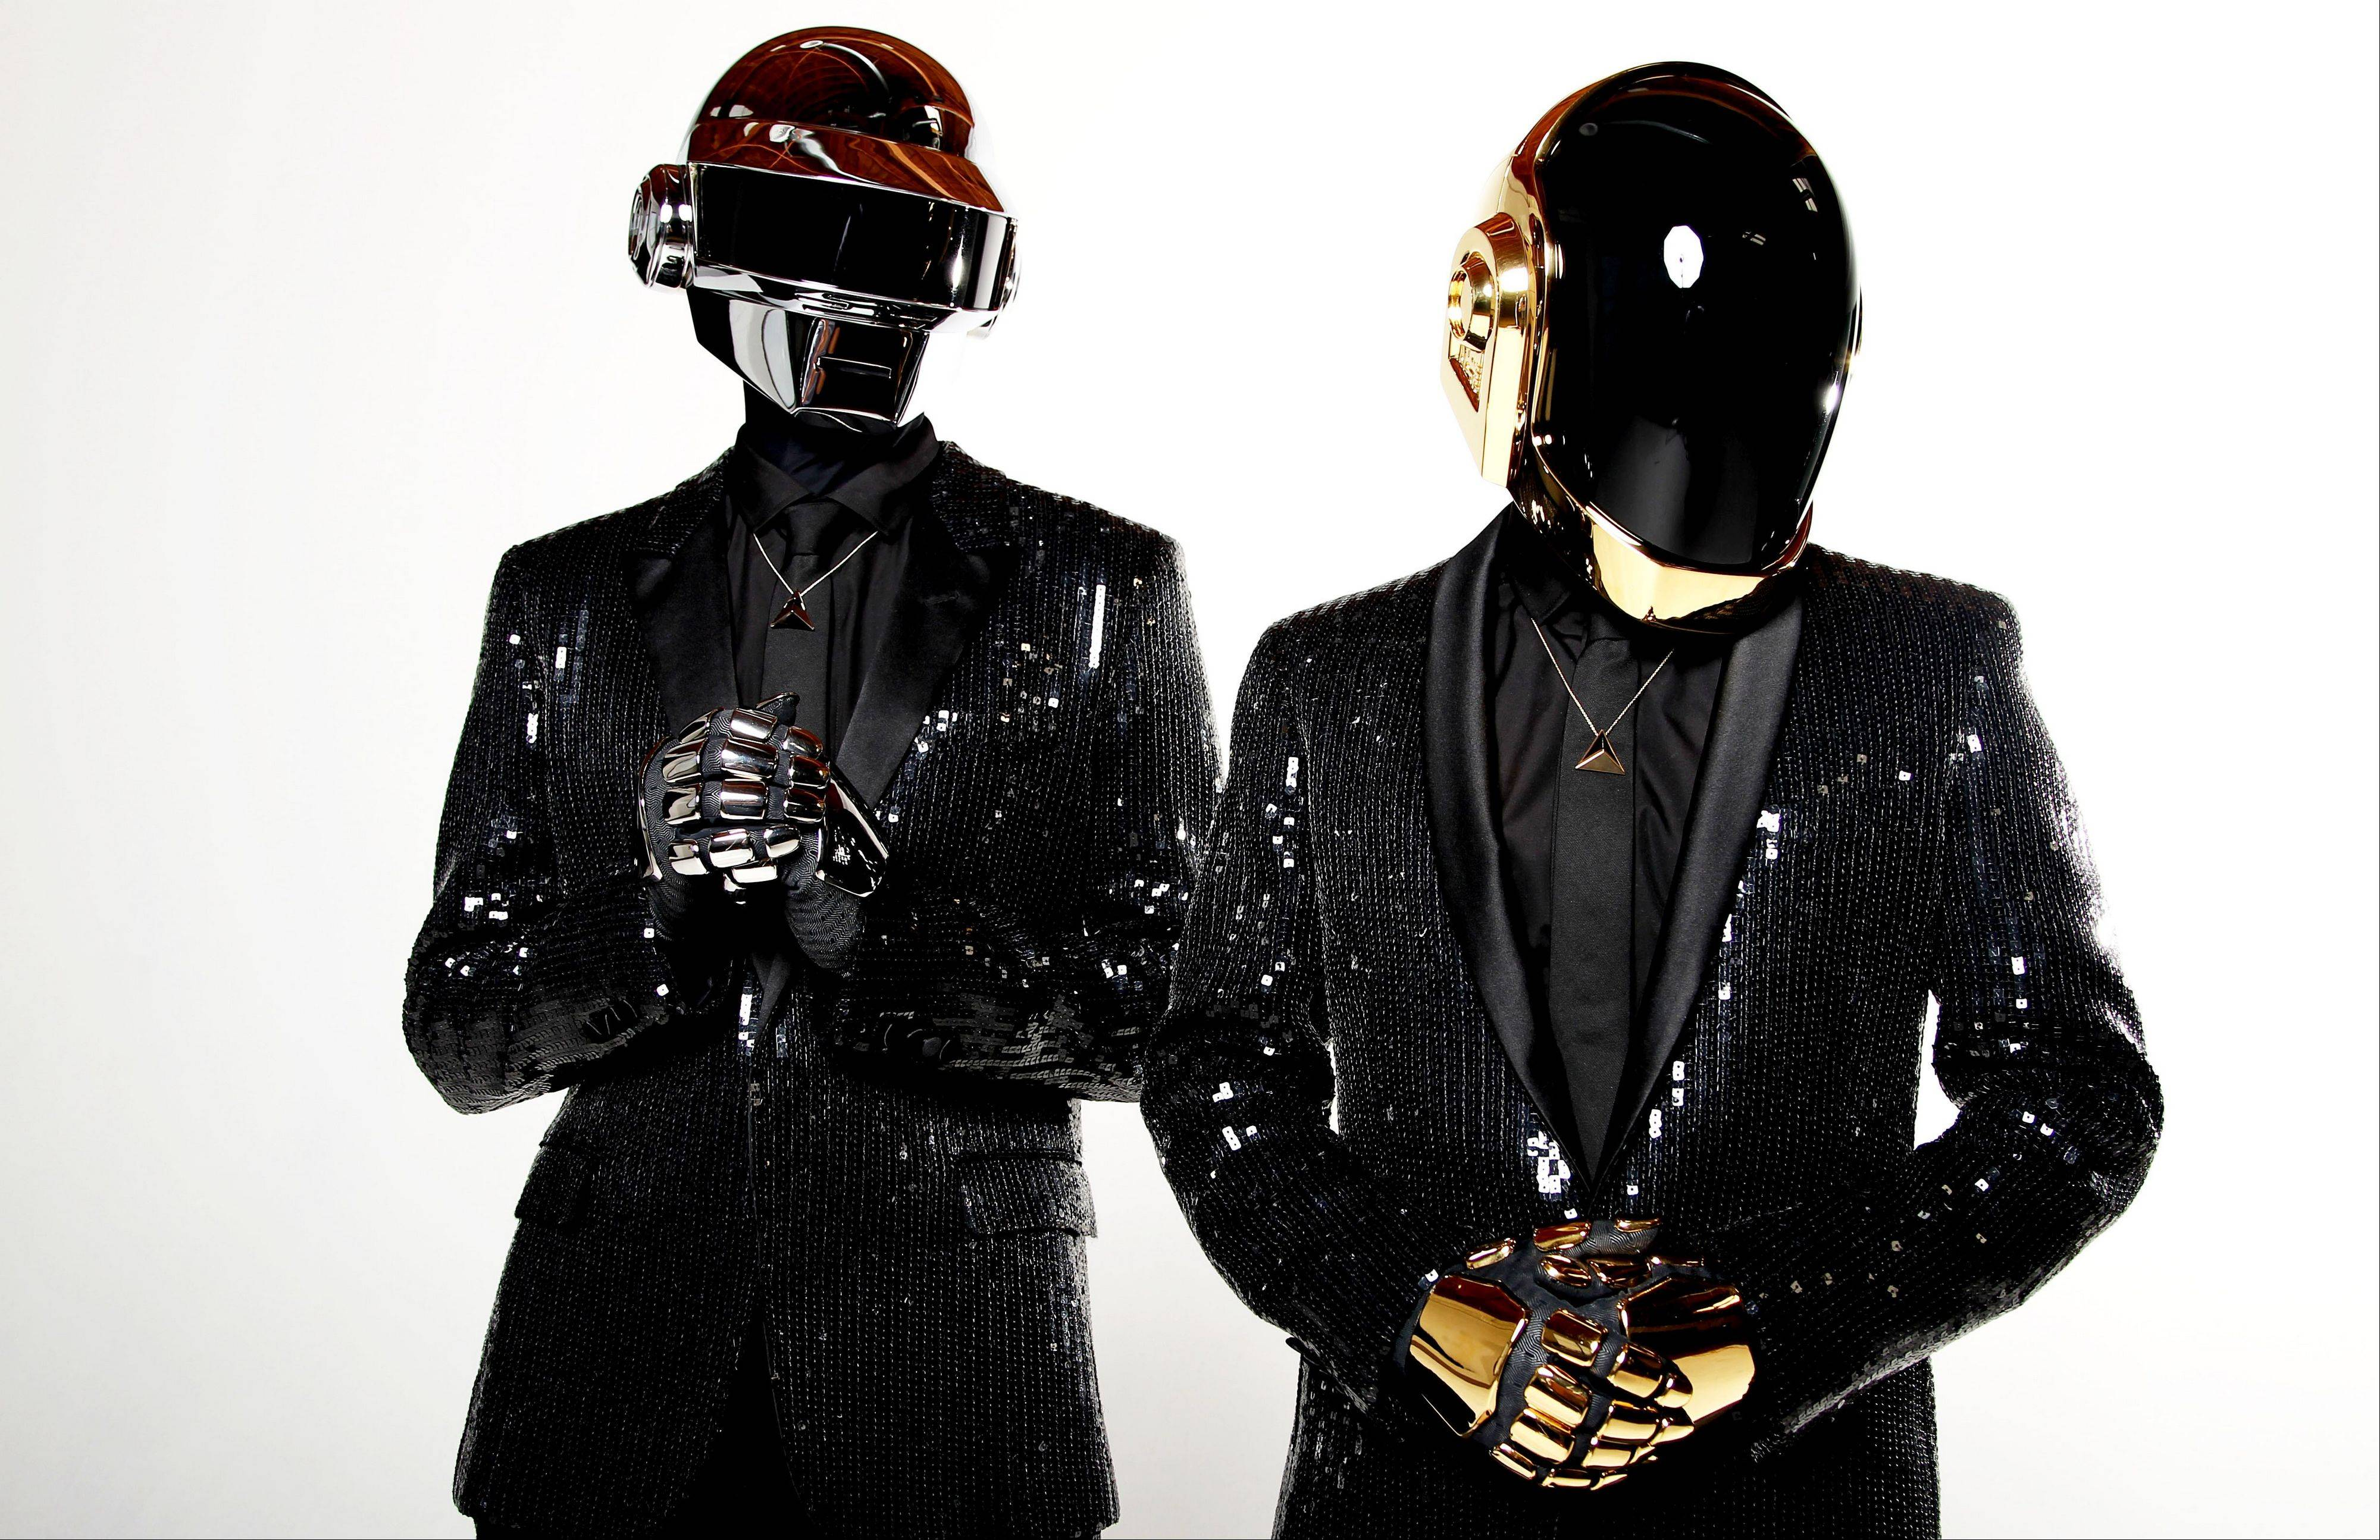 Daft Punk � Thomas Bangalter, left, and Guy-Manuel de Homem-Christo � has five Grammy nominations, including album of the year for �Random Access Memories� and record of the year for �Get Lucky.�